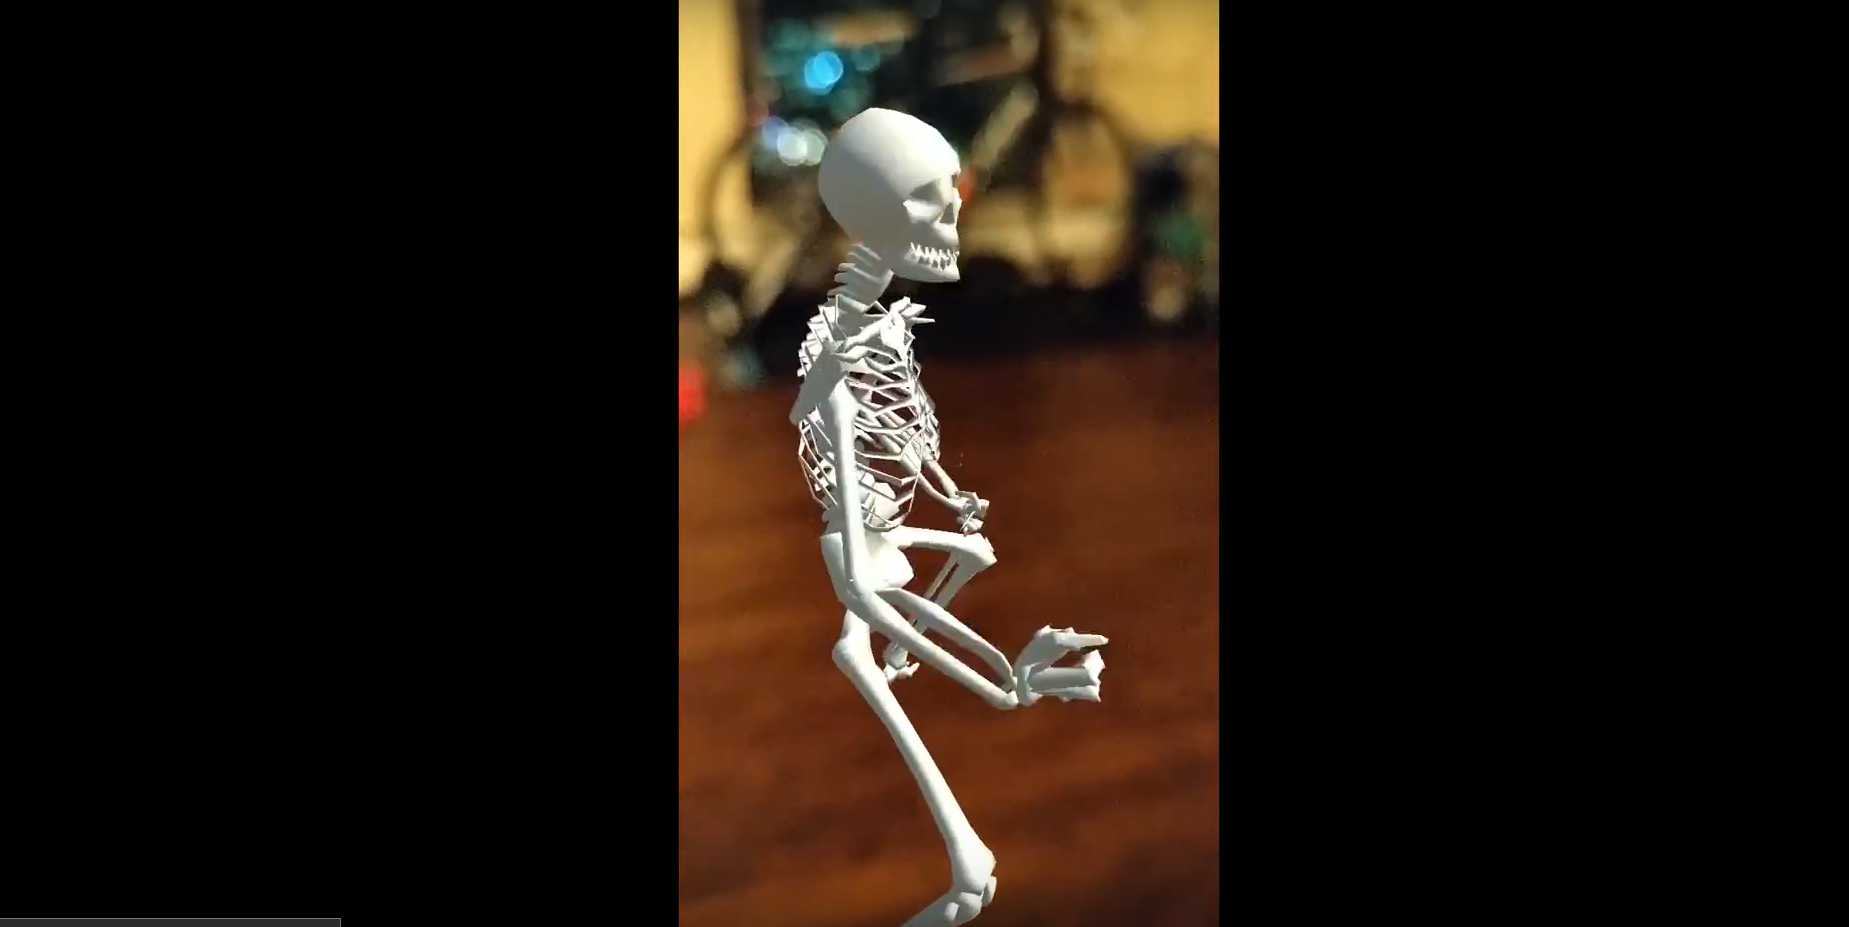 Spooky Scary Skeletons (Augmented Reality)